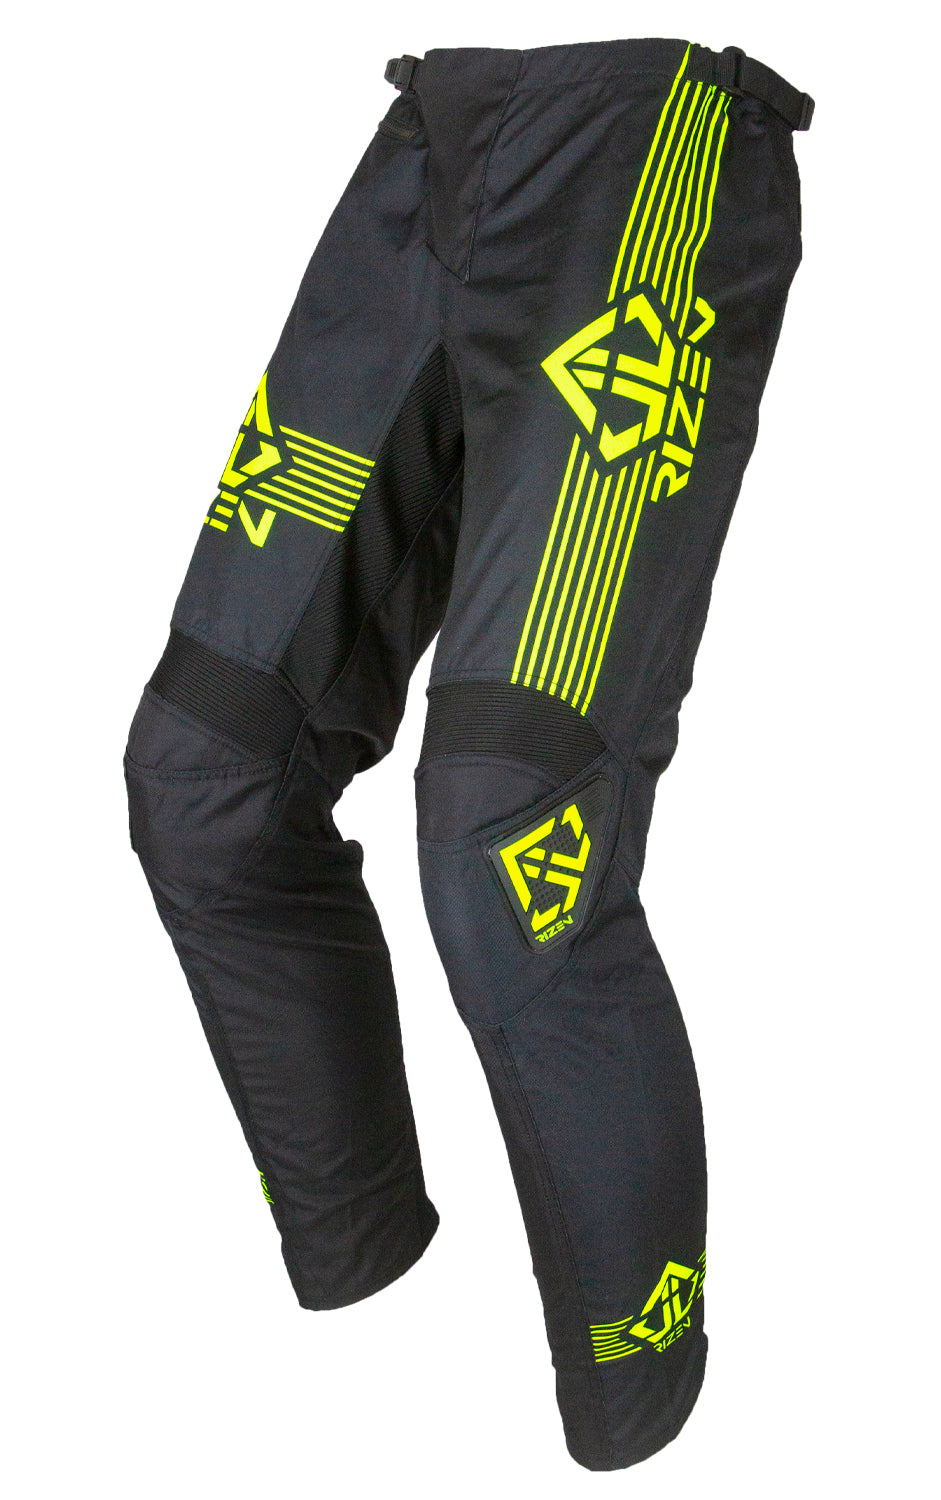 PHAZE 1 PANTS KIDS - BICYCLE - BLACK/HI-VIZ